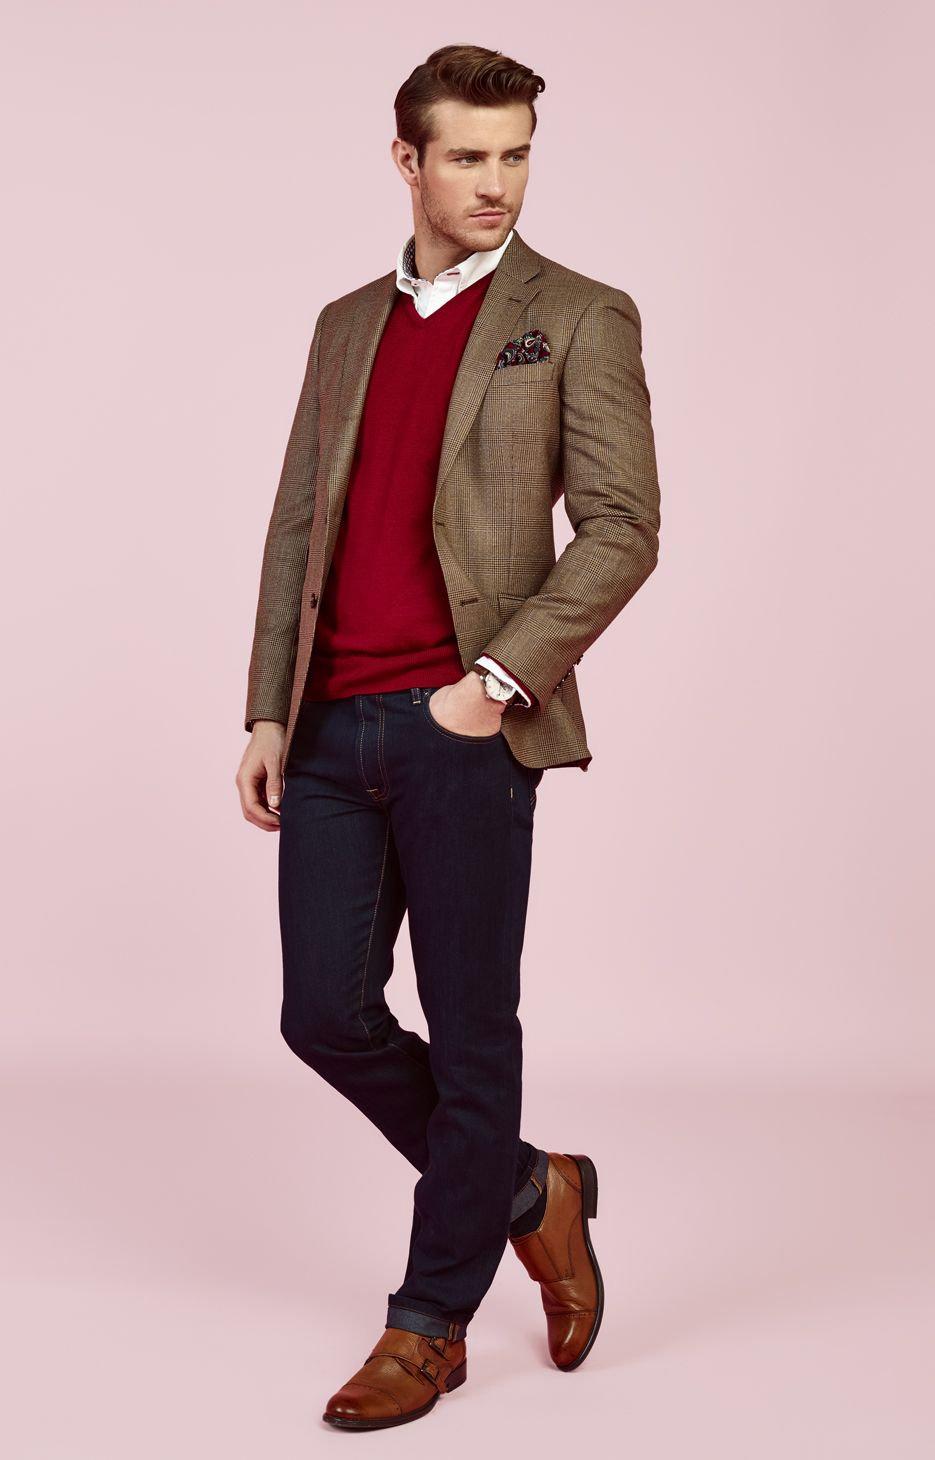 men's casual clothing - 736×1149